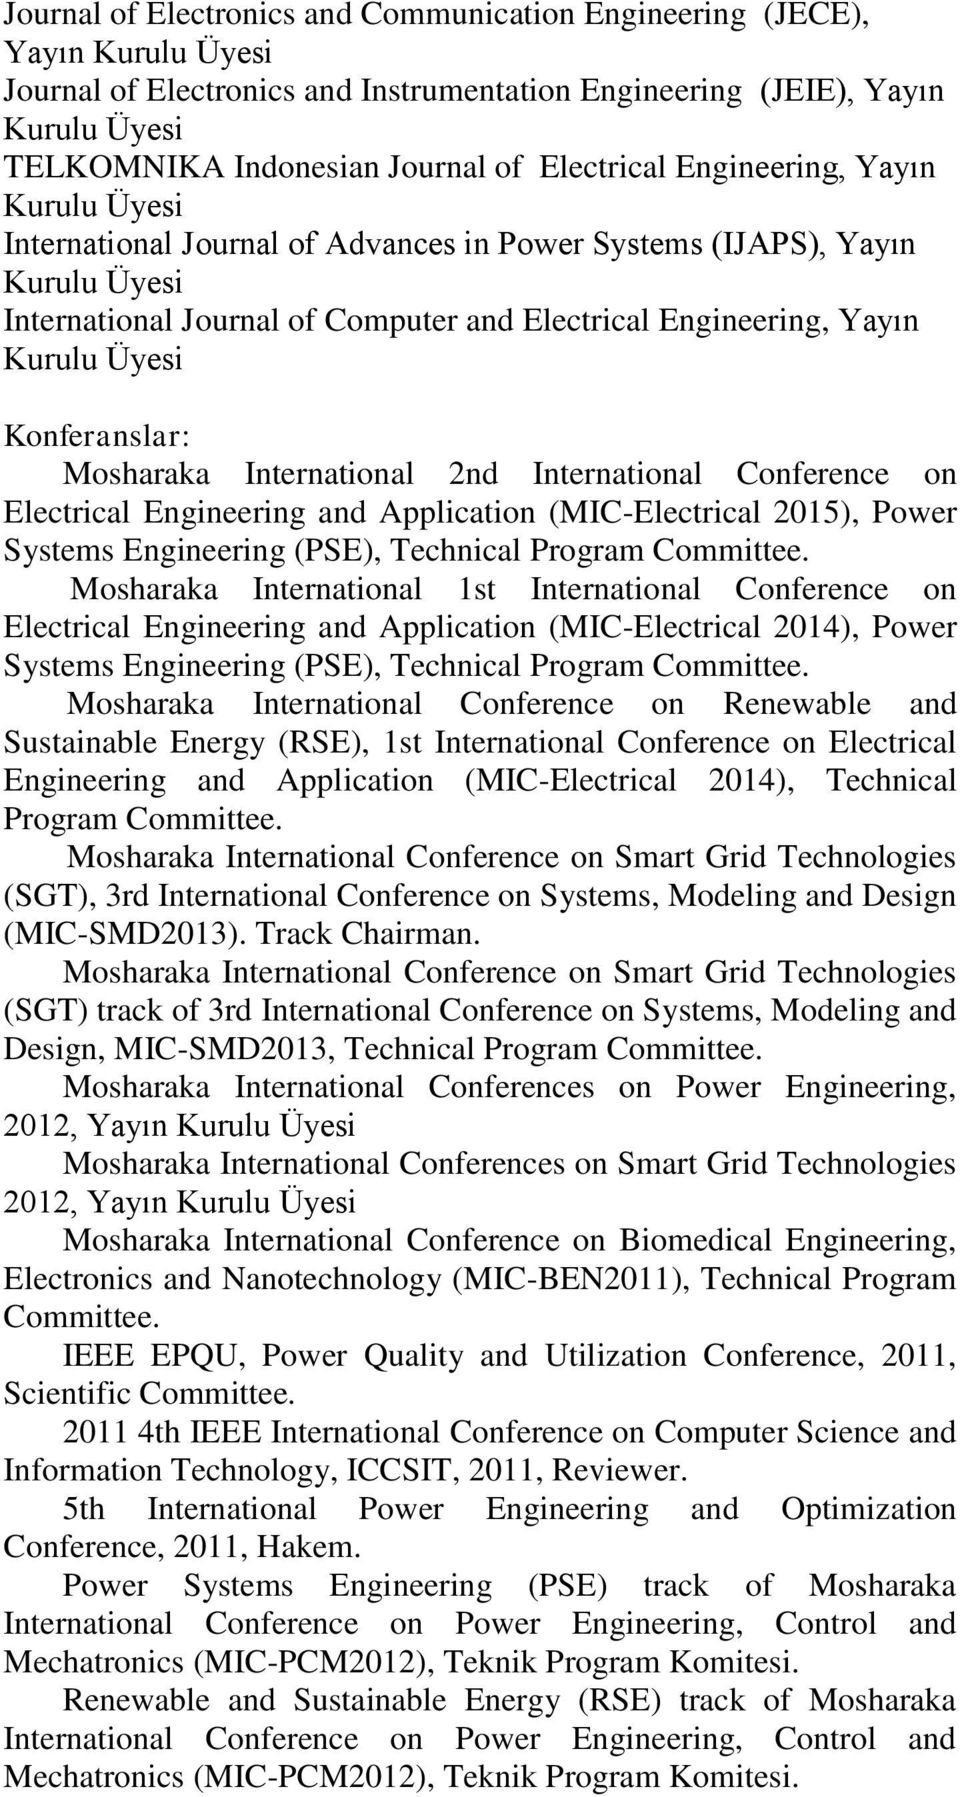 Üyesi Konferanslar: Mosharaka International 2nd International Conference on Electrical Engineering and Application (MIC-Electrical 2015), Power Systems Engineering (PSE), Technical Program Committee.